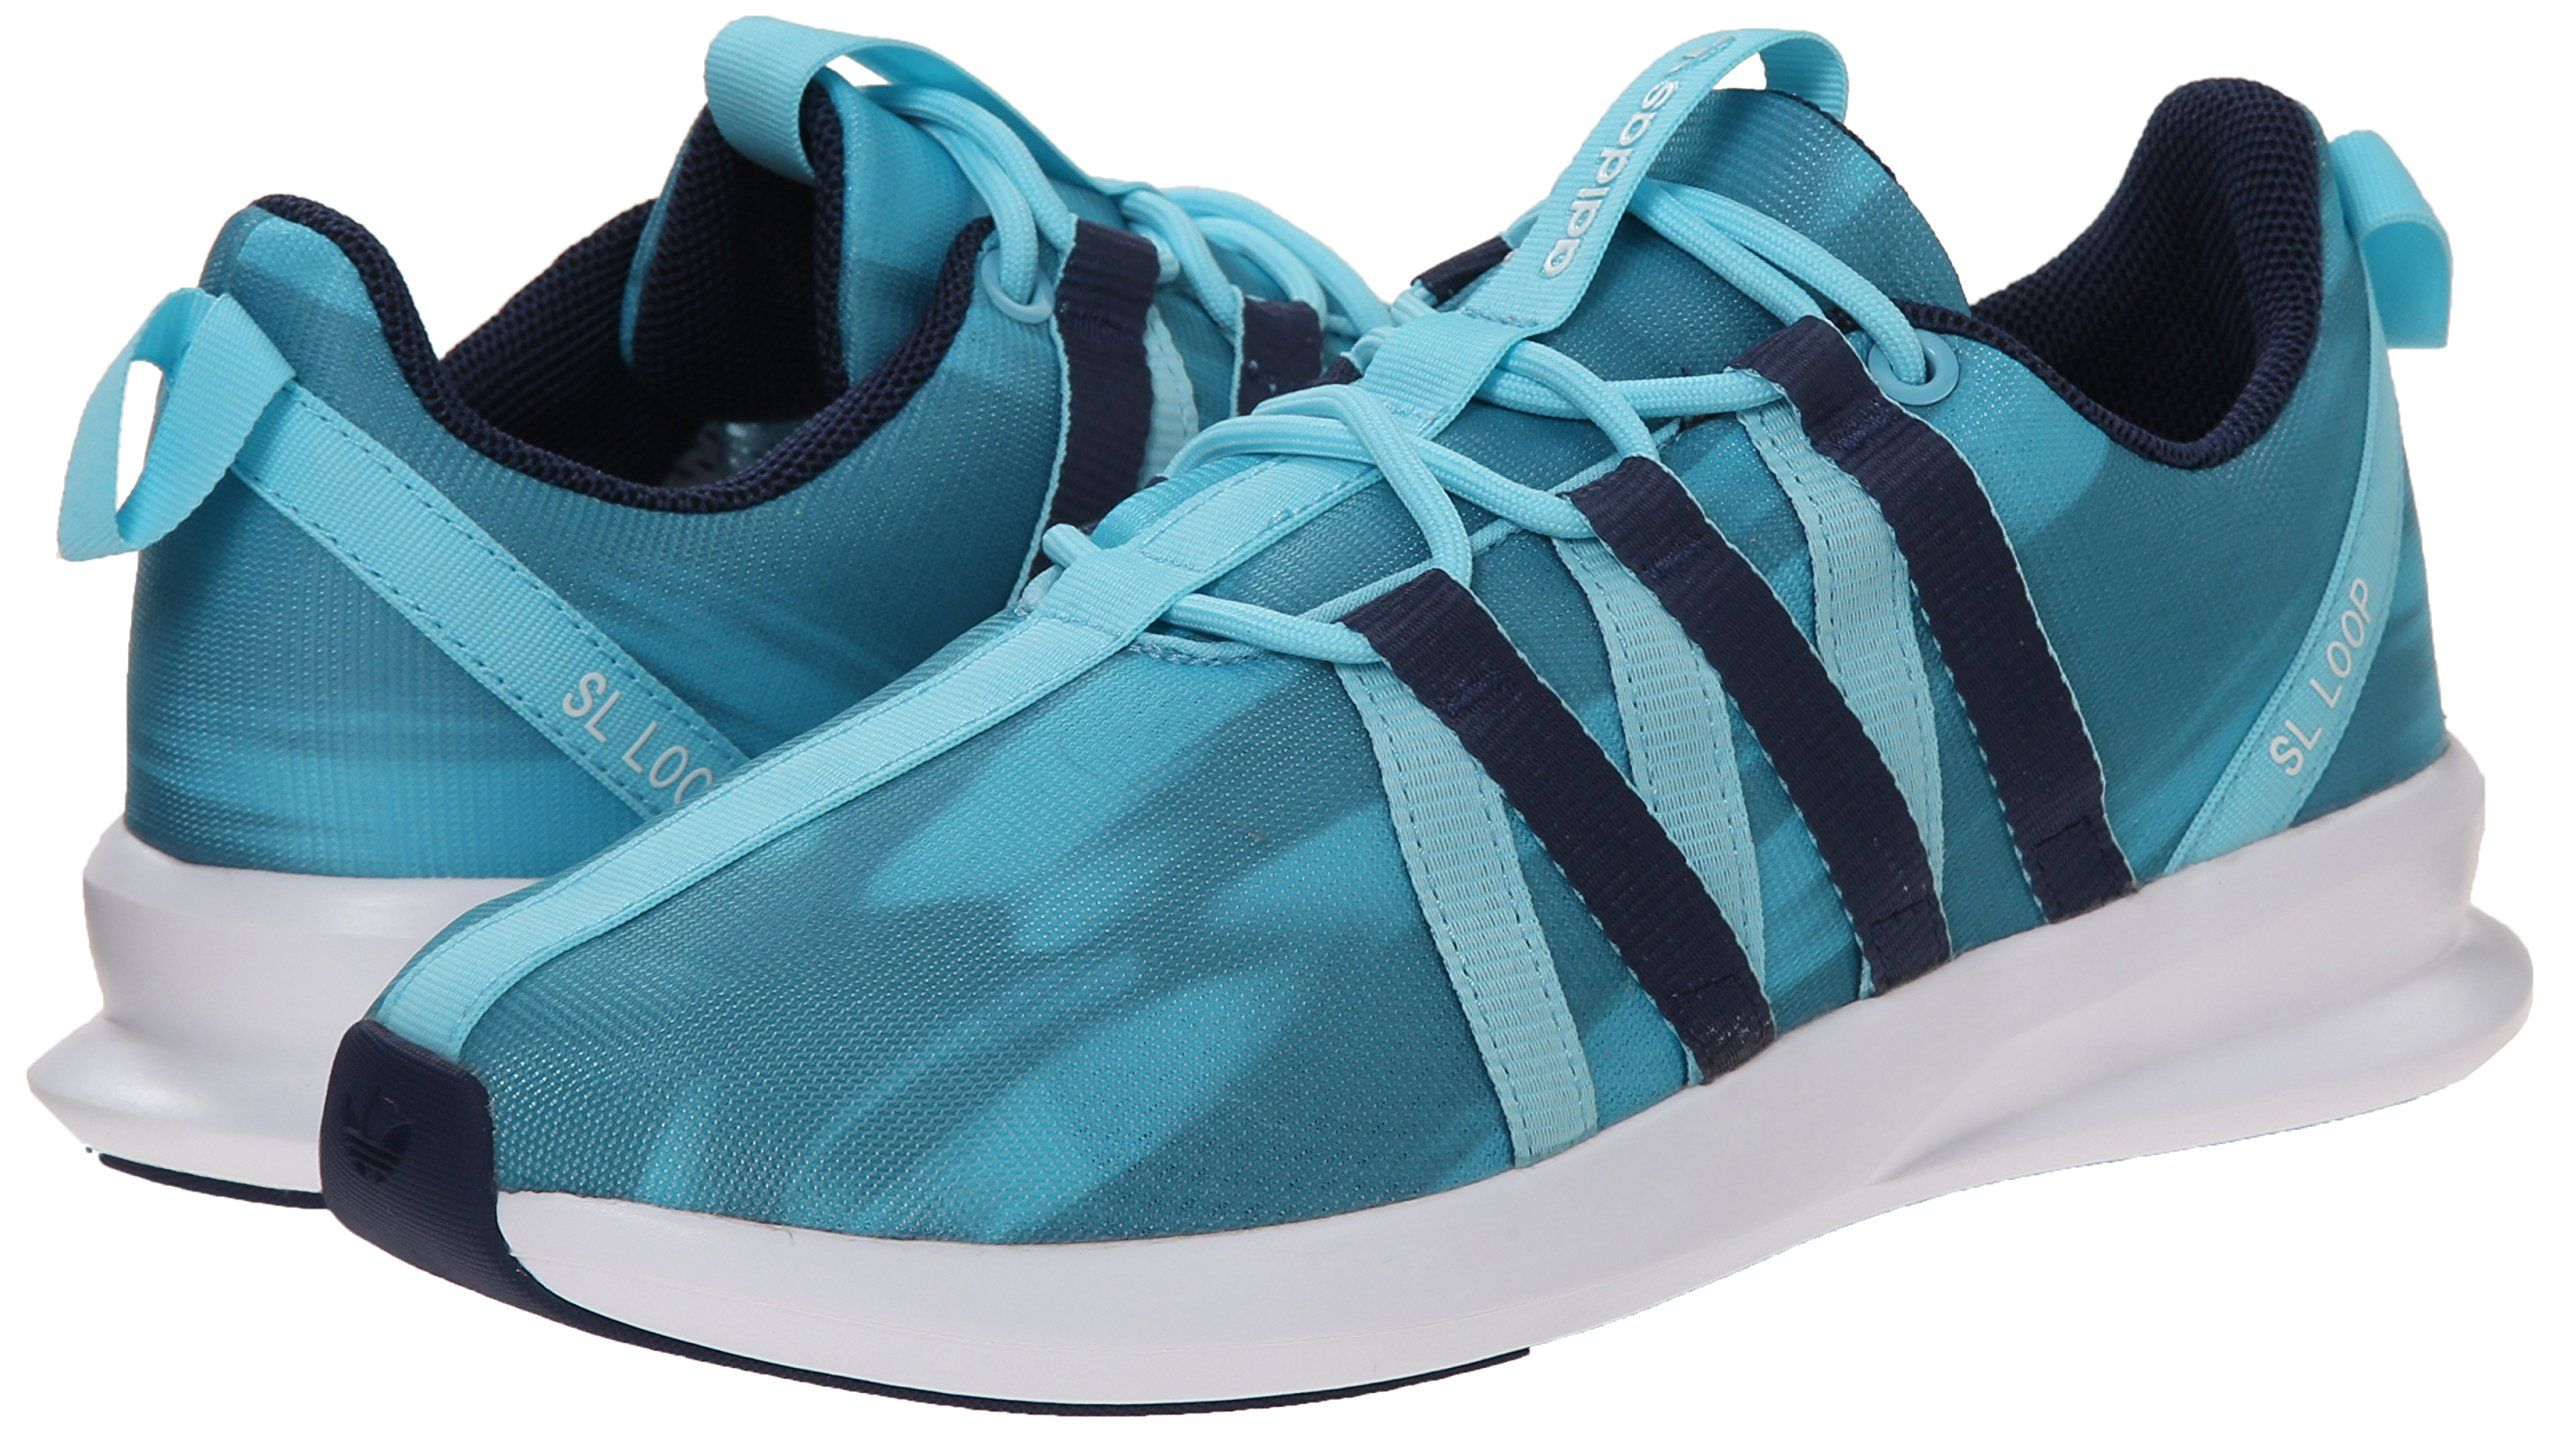 Womens Shoes adidas Originals SL Loop Racer W Clear Green/Dark Slate/White